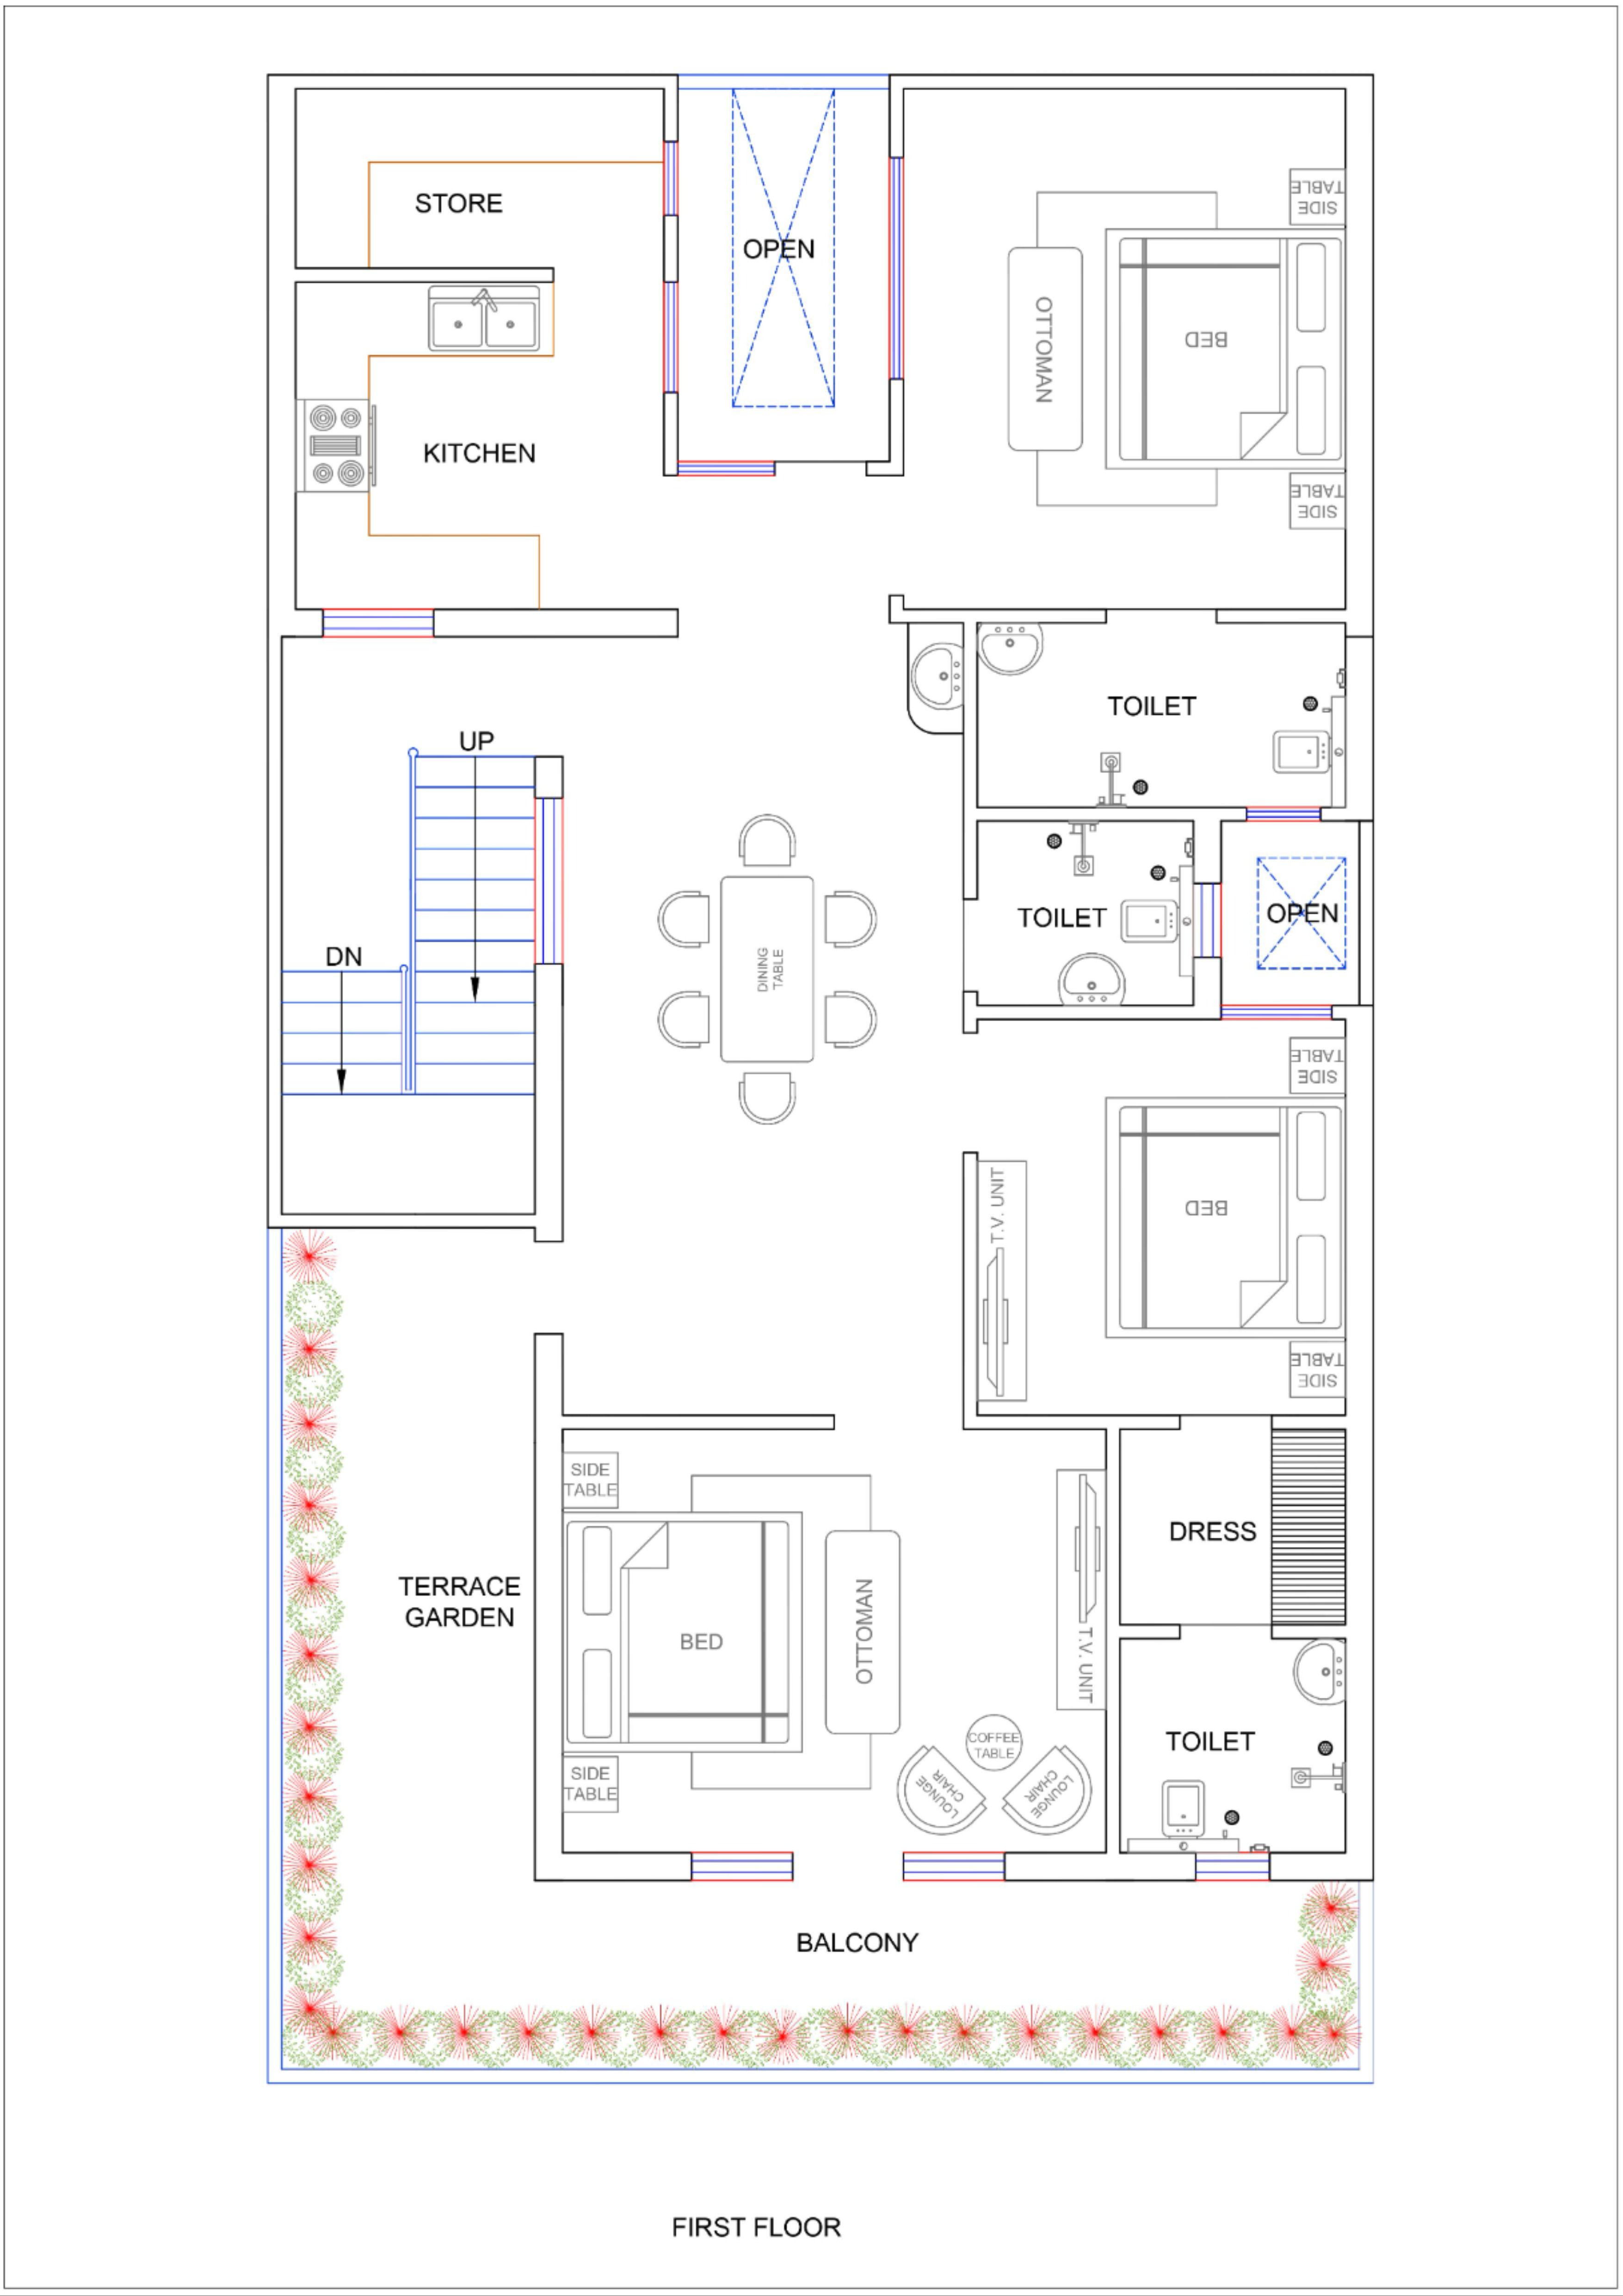 50 Floor Plans Ideas In 2021 House Plans House Map Indian House Plans